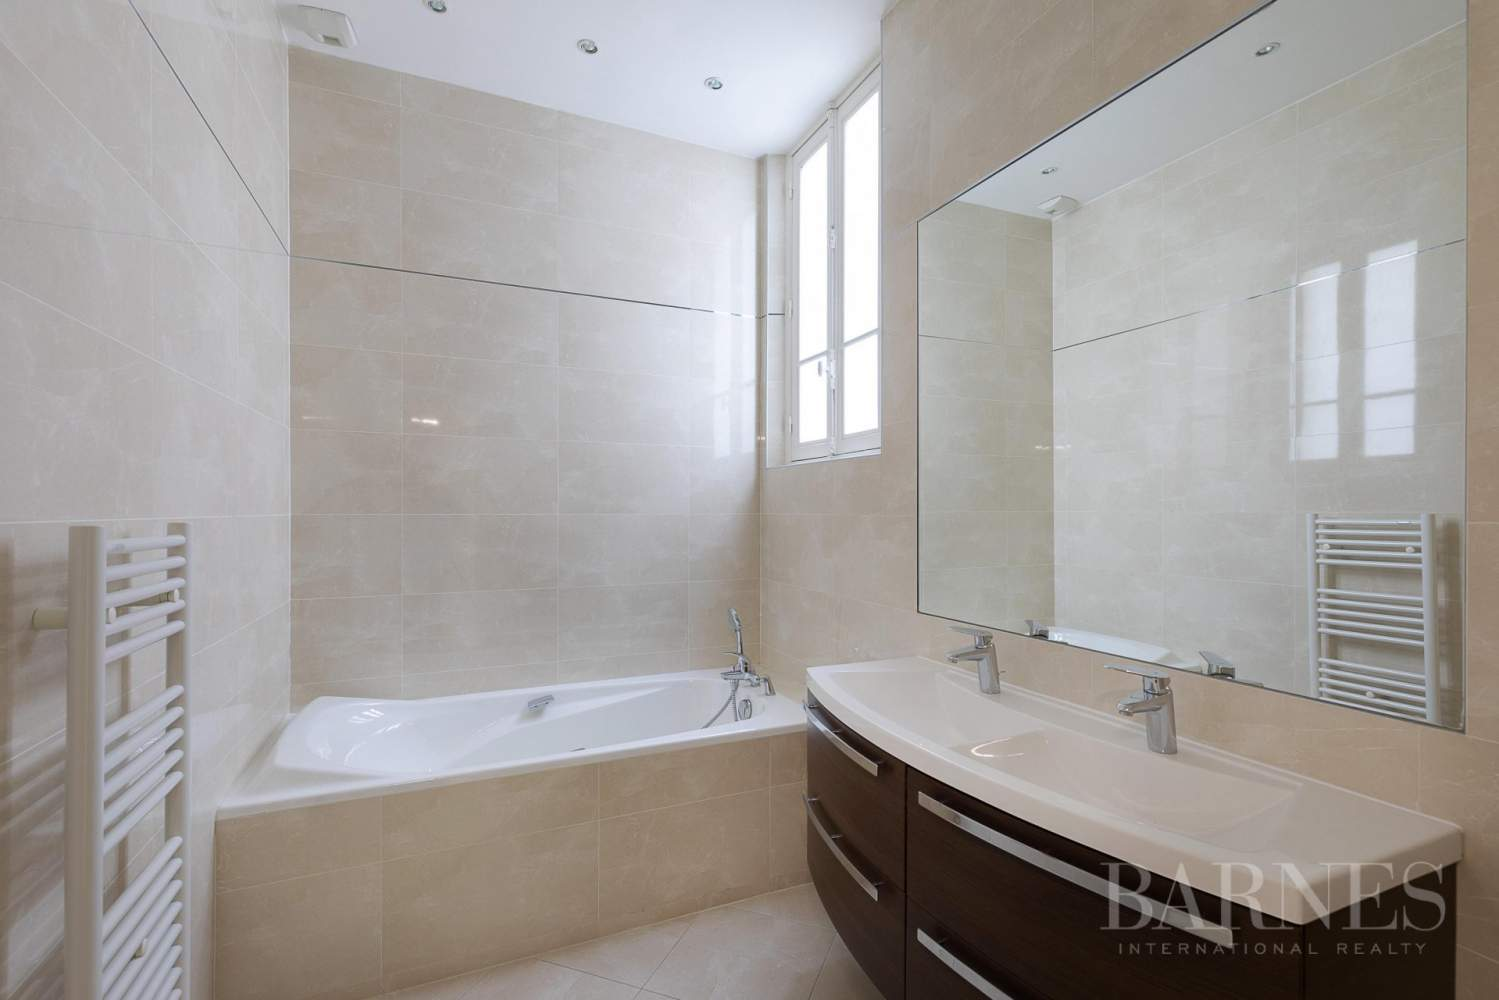 EXCLUSIVE - 8-ROOM APARTMENT FOR SALE - RENOVATED 1930s BUILDING - NEUILLY/PASTEUR picture 17